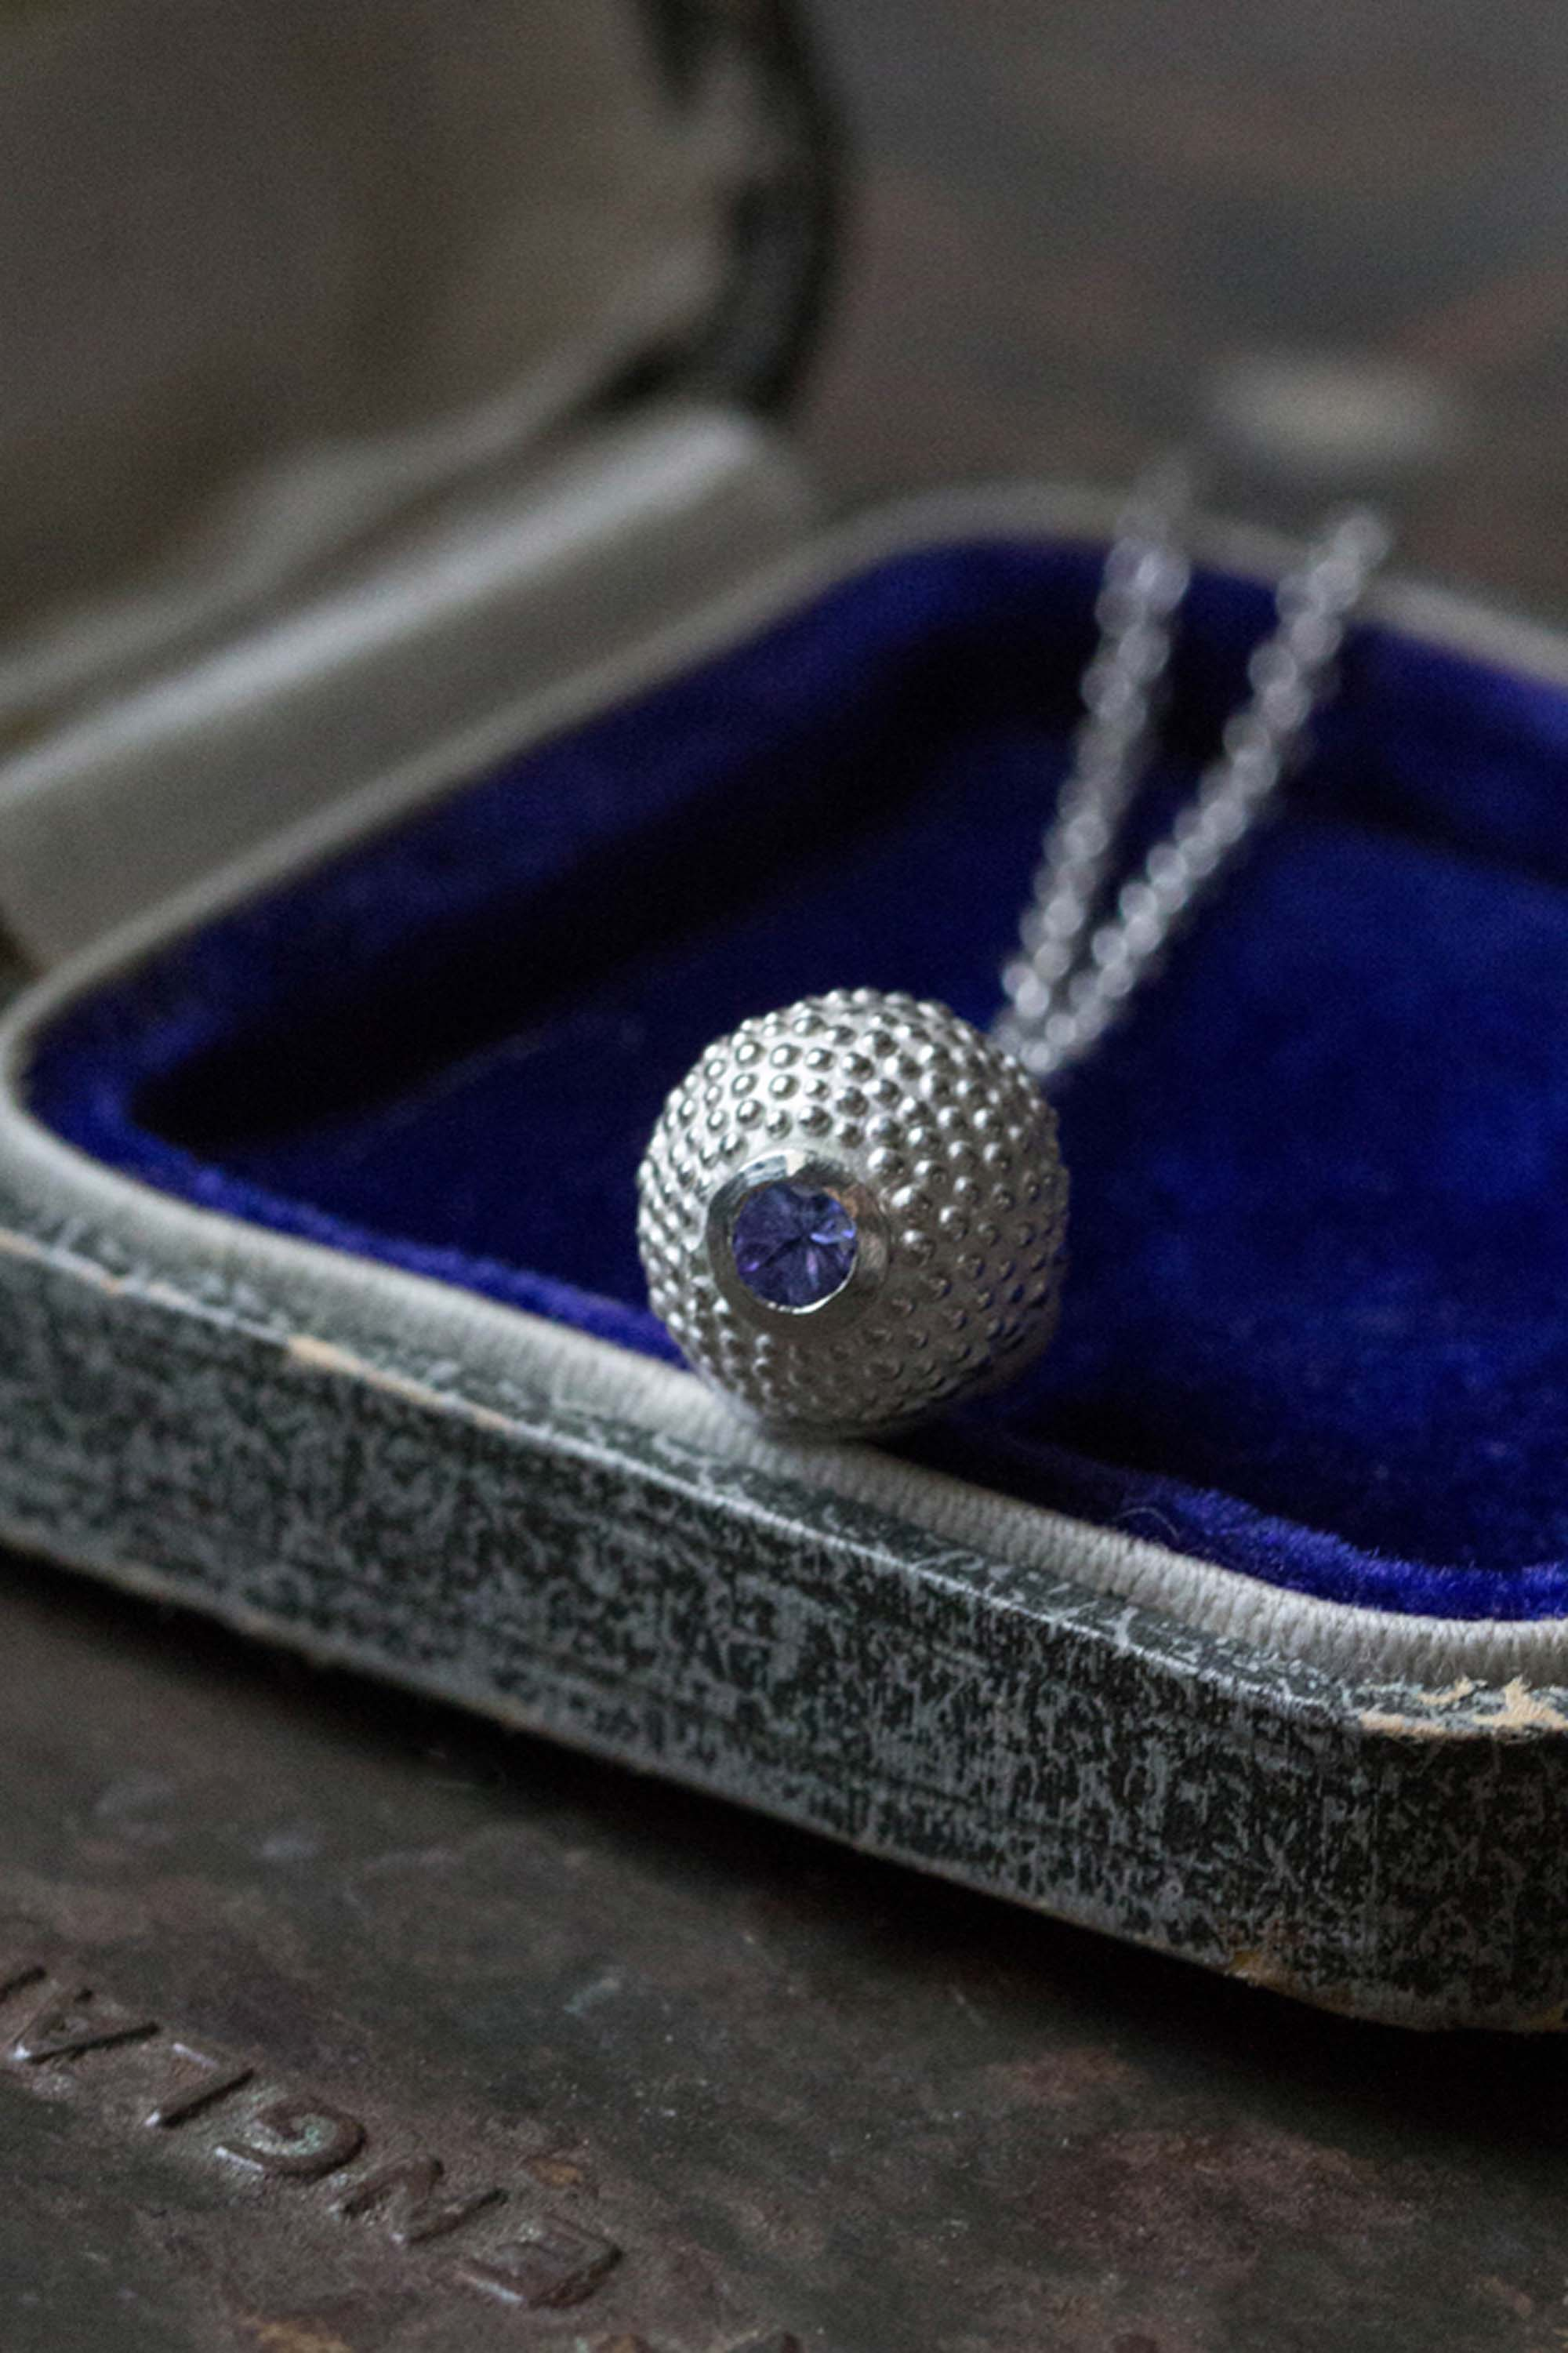 Catherine Hills Jewellery birthstone ball and chain pendant necklace